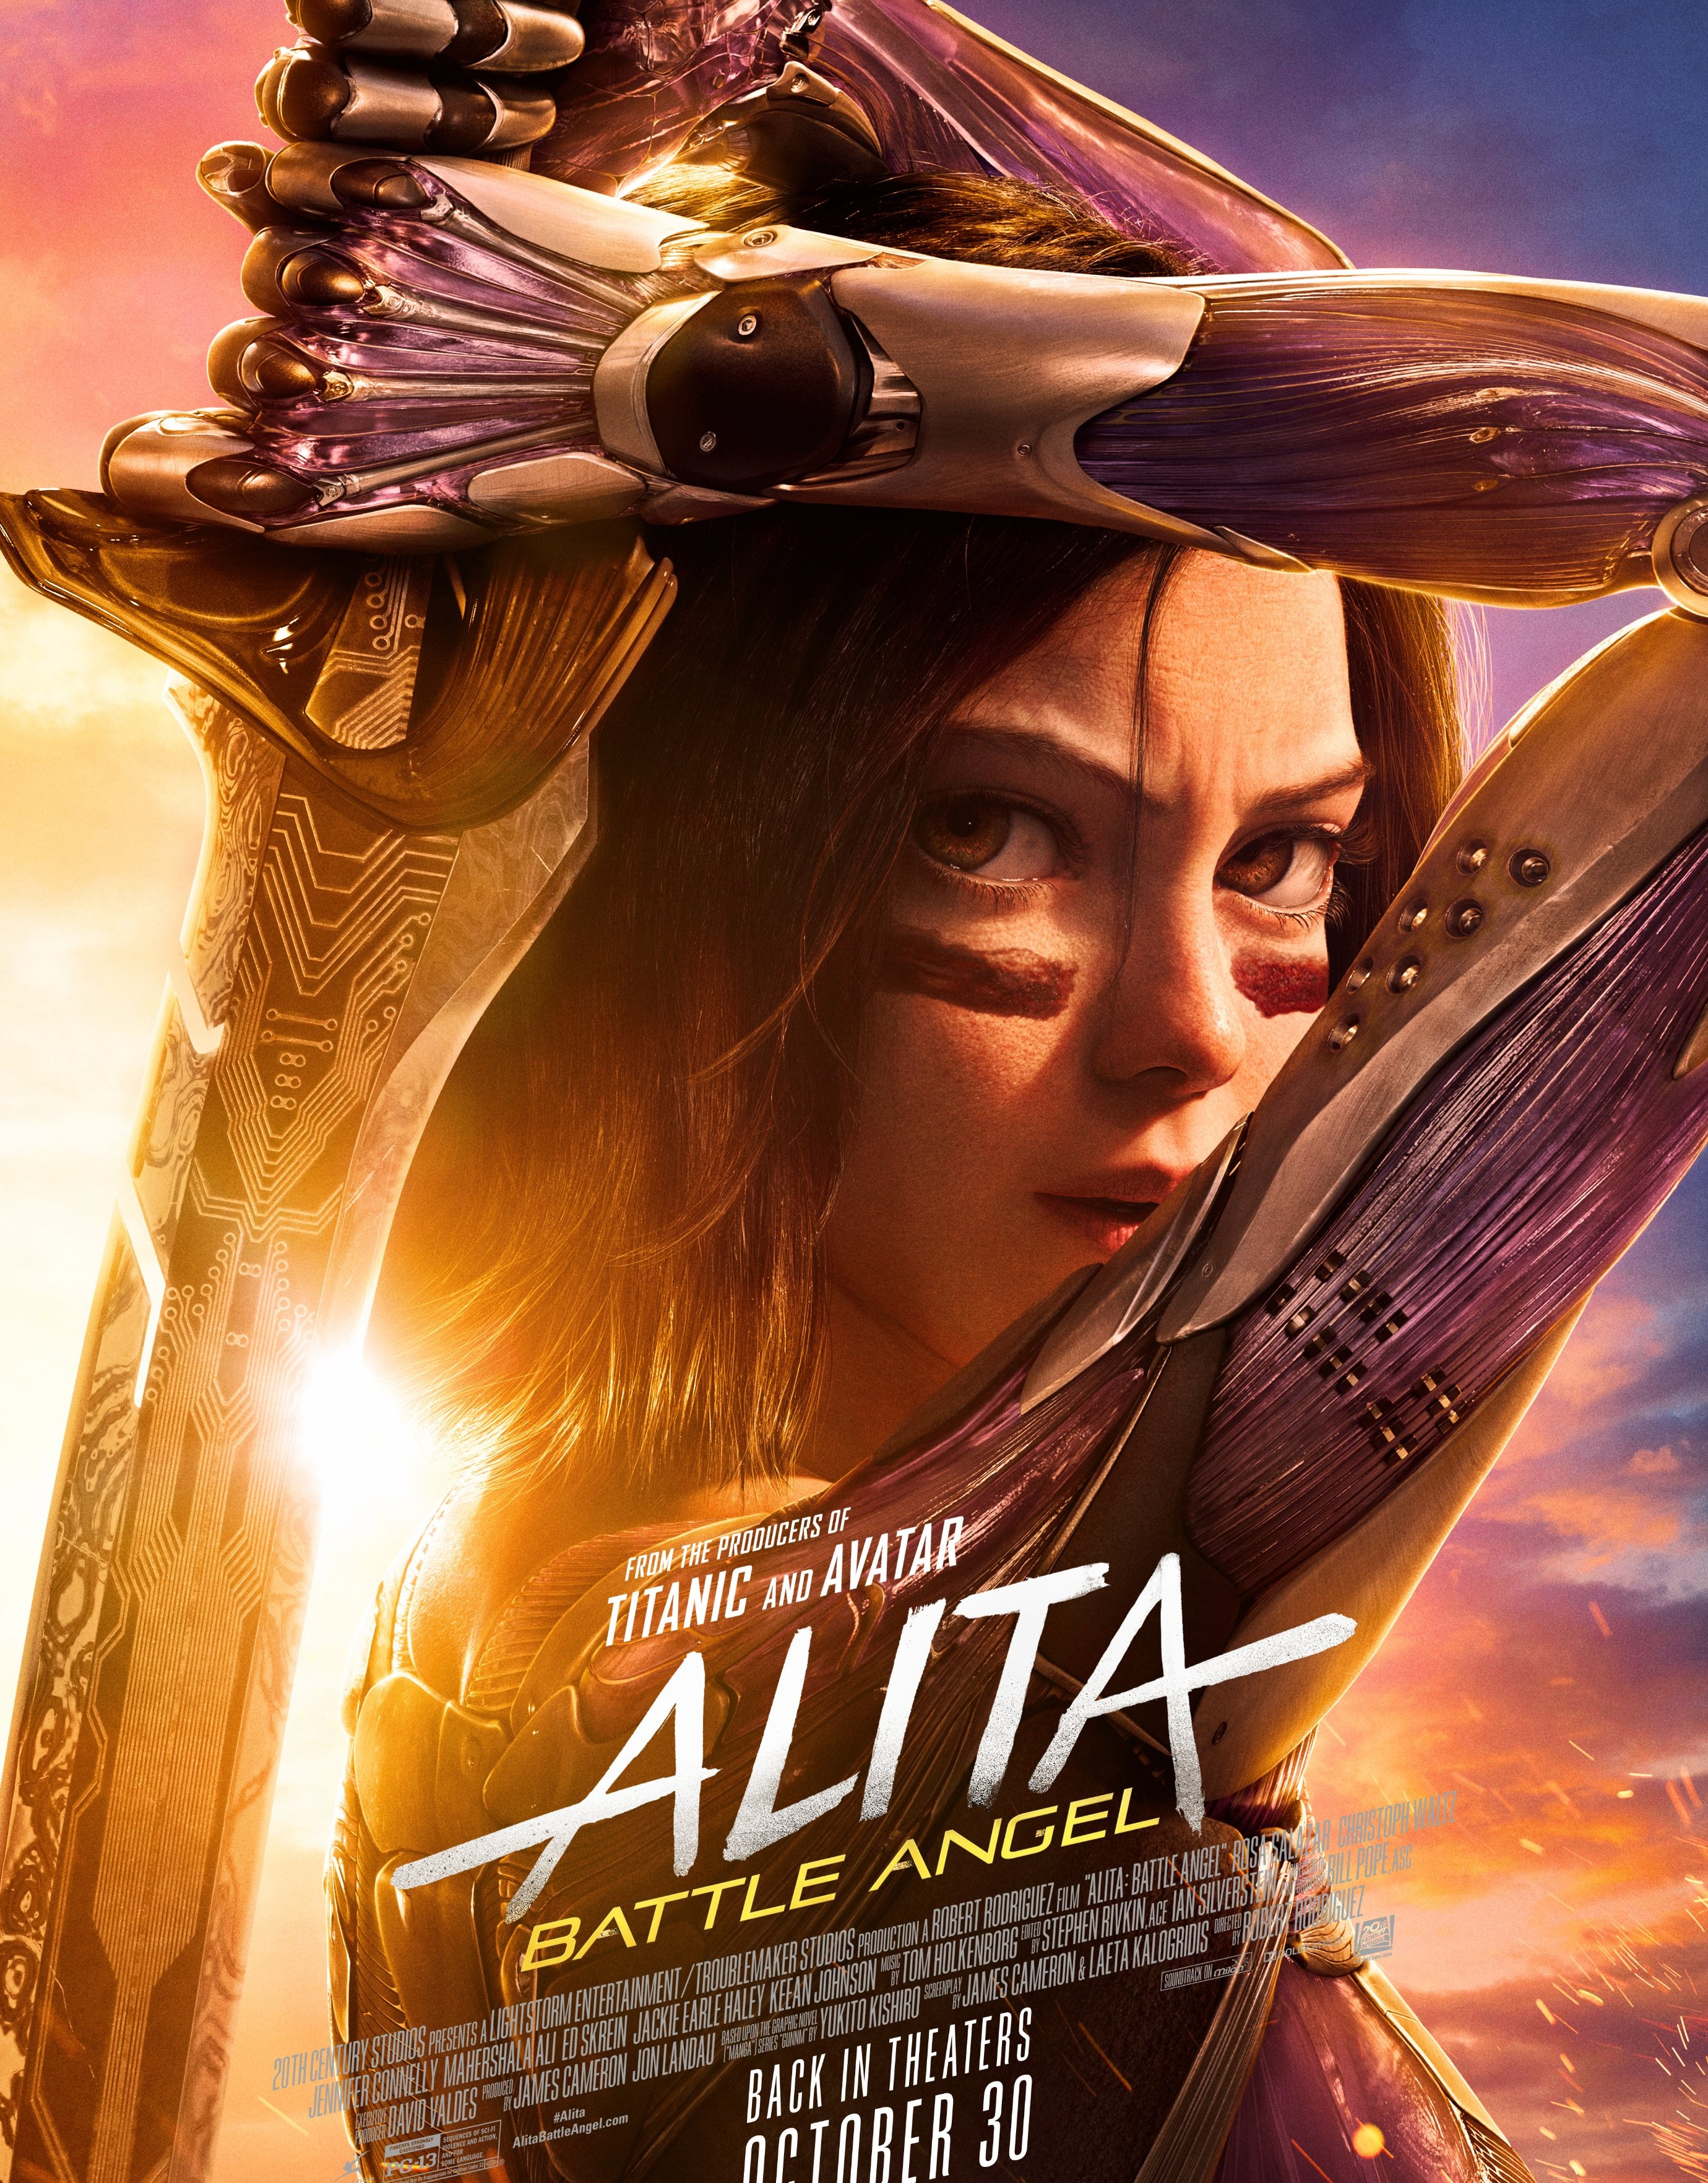 Alita: Battle Angel 2 development updates, reasons behind first movie's rerelease revealed